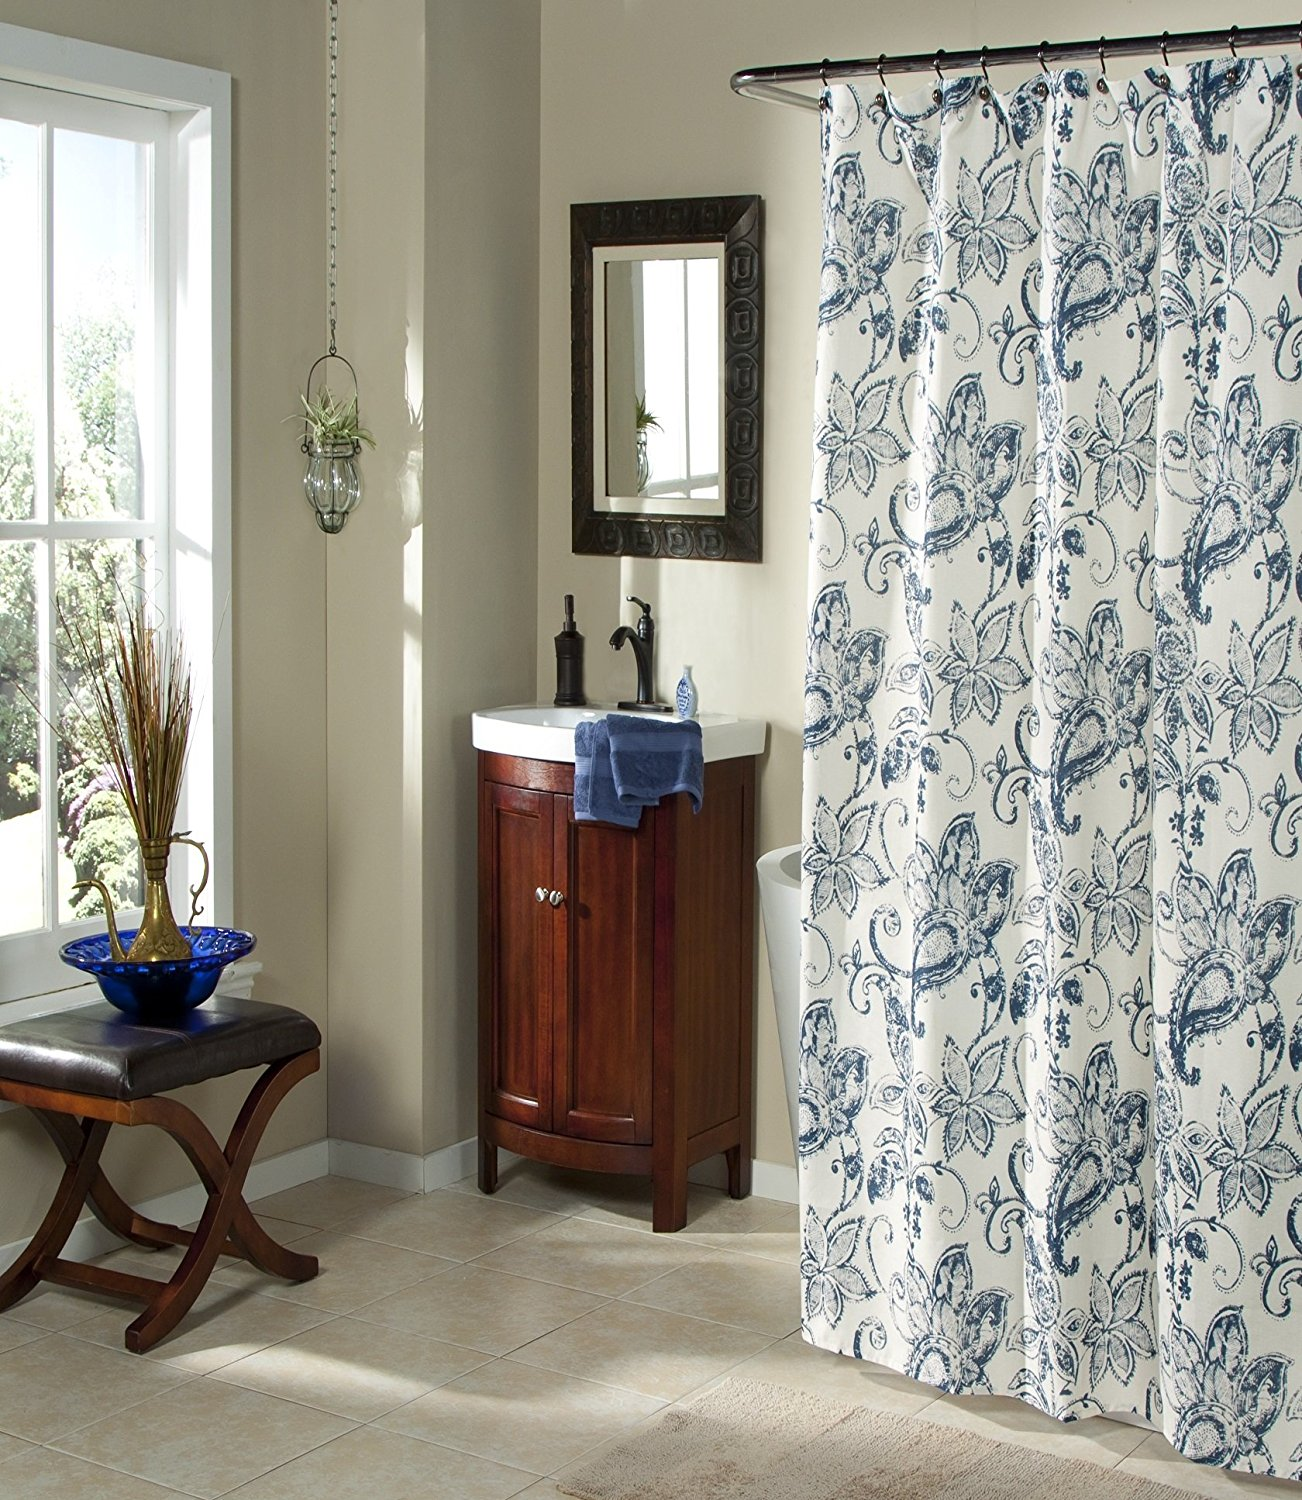 Mstyle Fabric Shower Curtain Blue Floral Pattern On Cream Background Batik Blossom Indigo